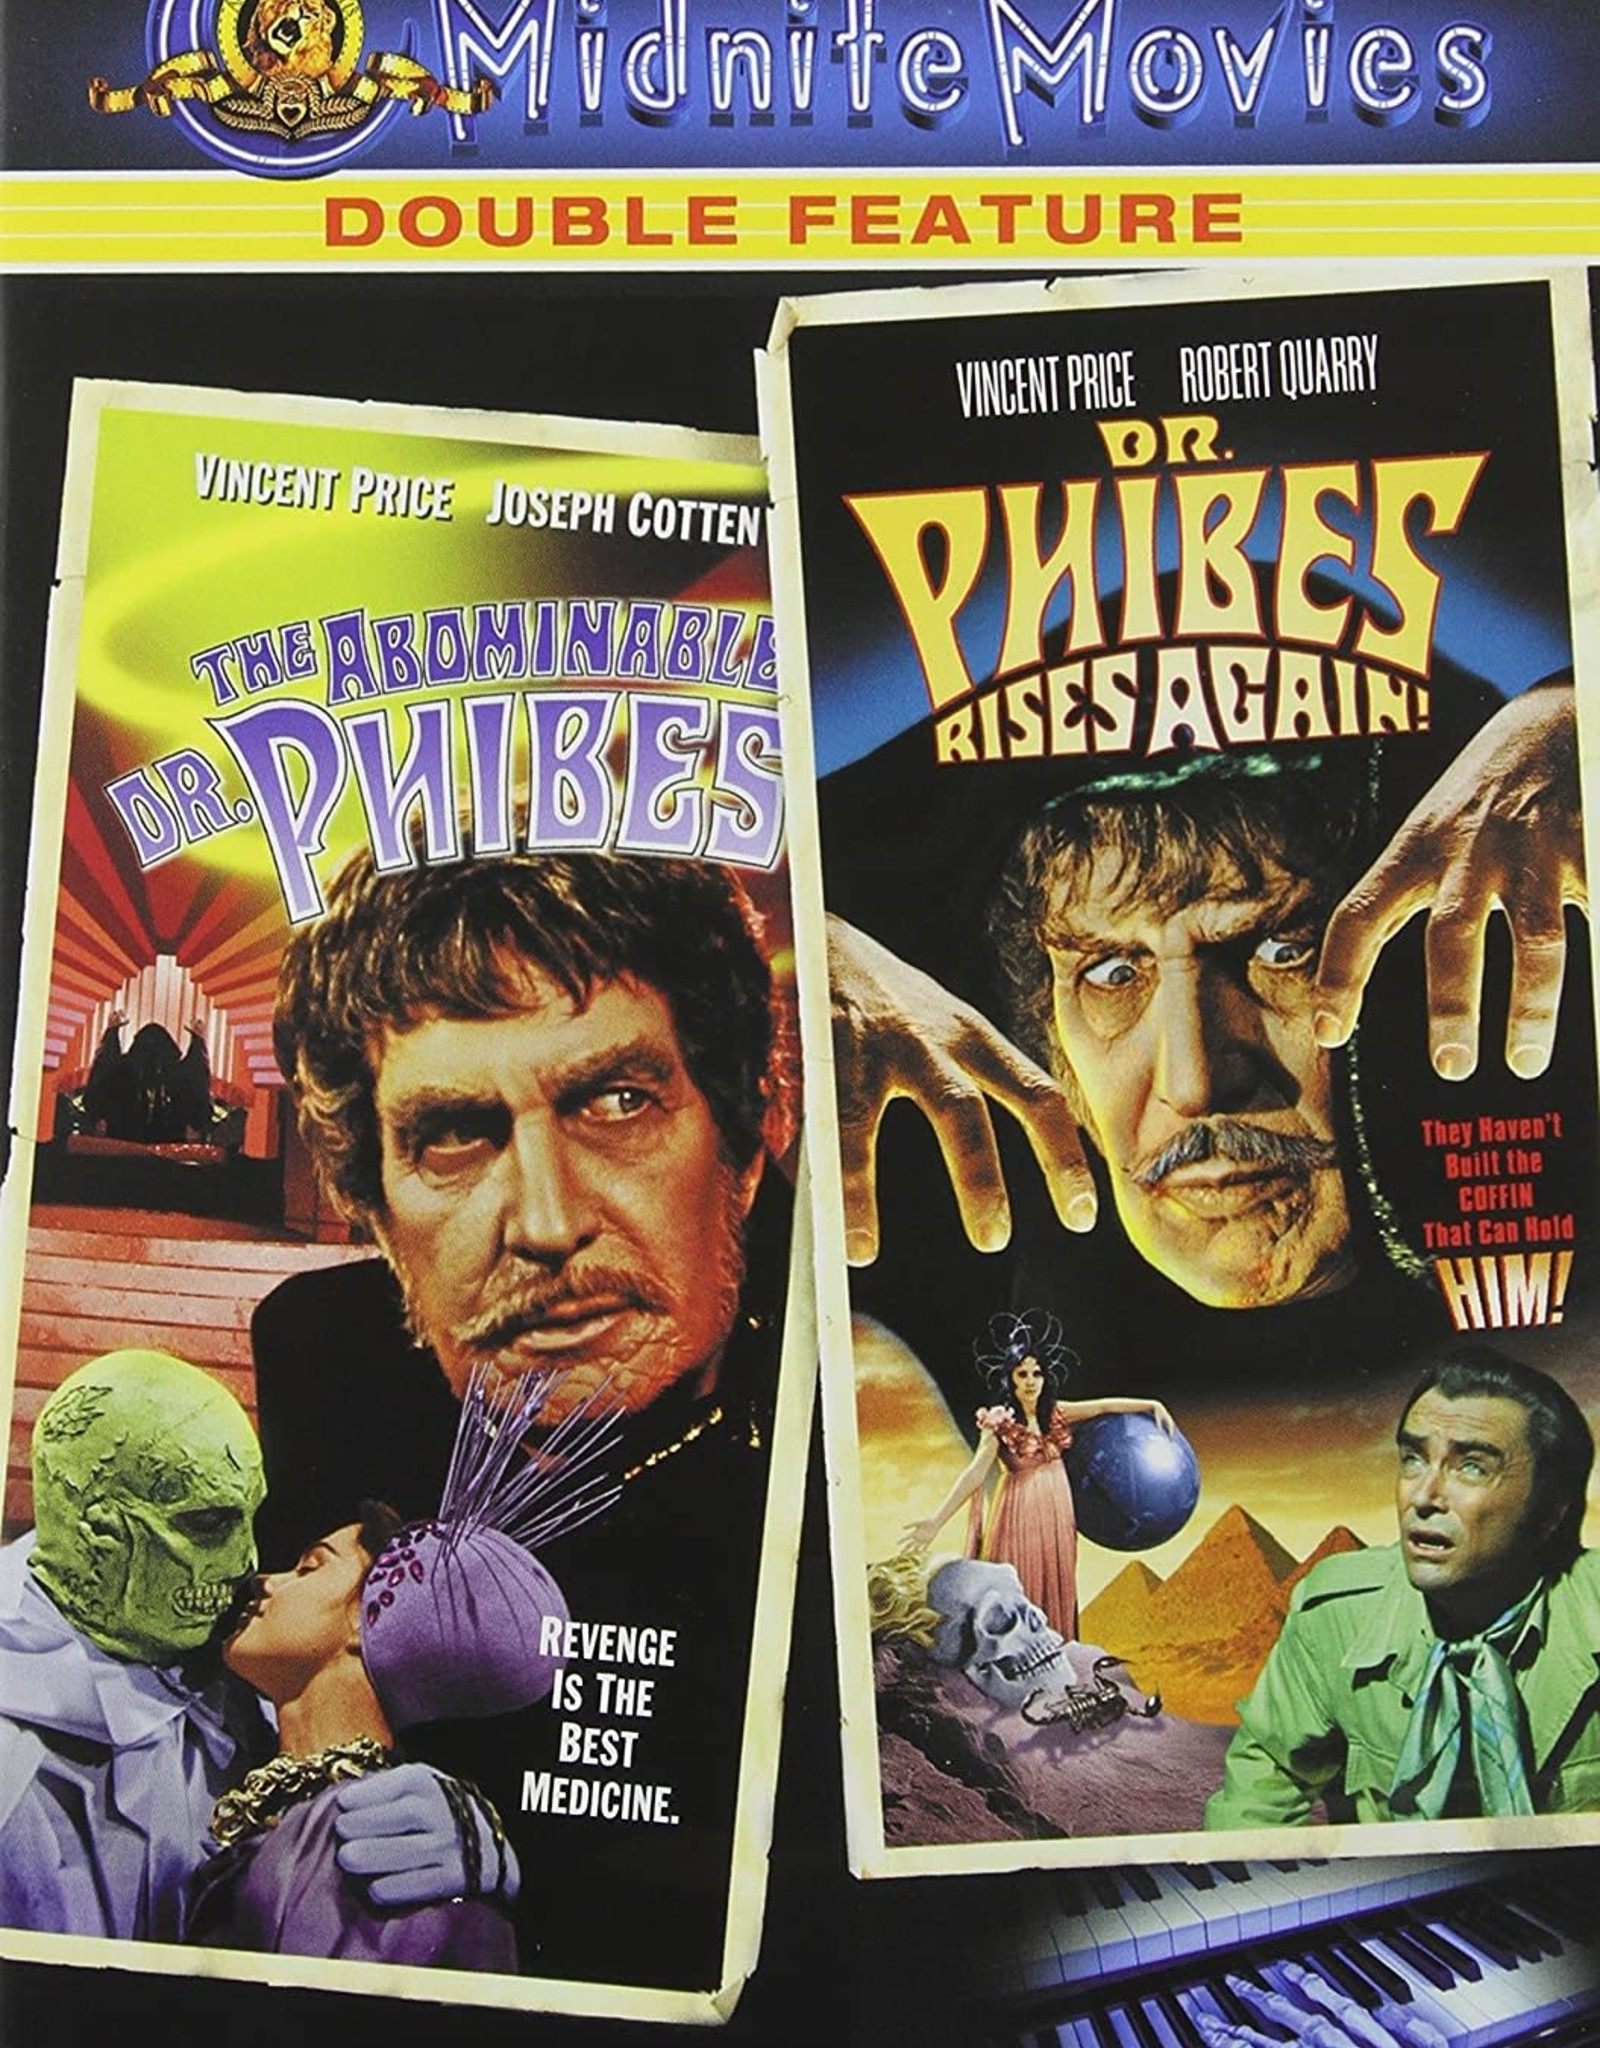 Horror Cult Abominable Dr. Phibes / Dr. Phibes Rises Again! (USED)